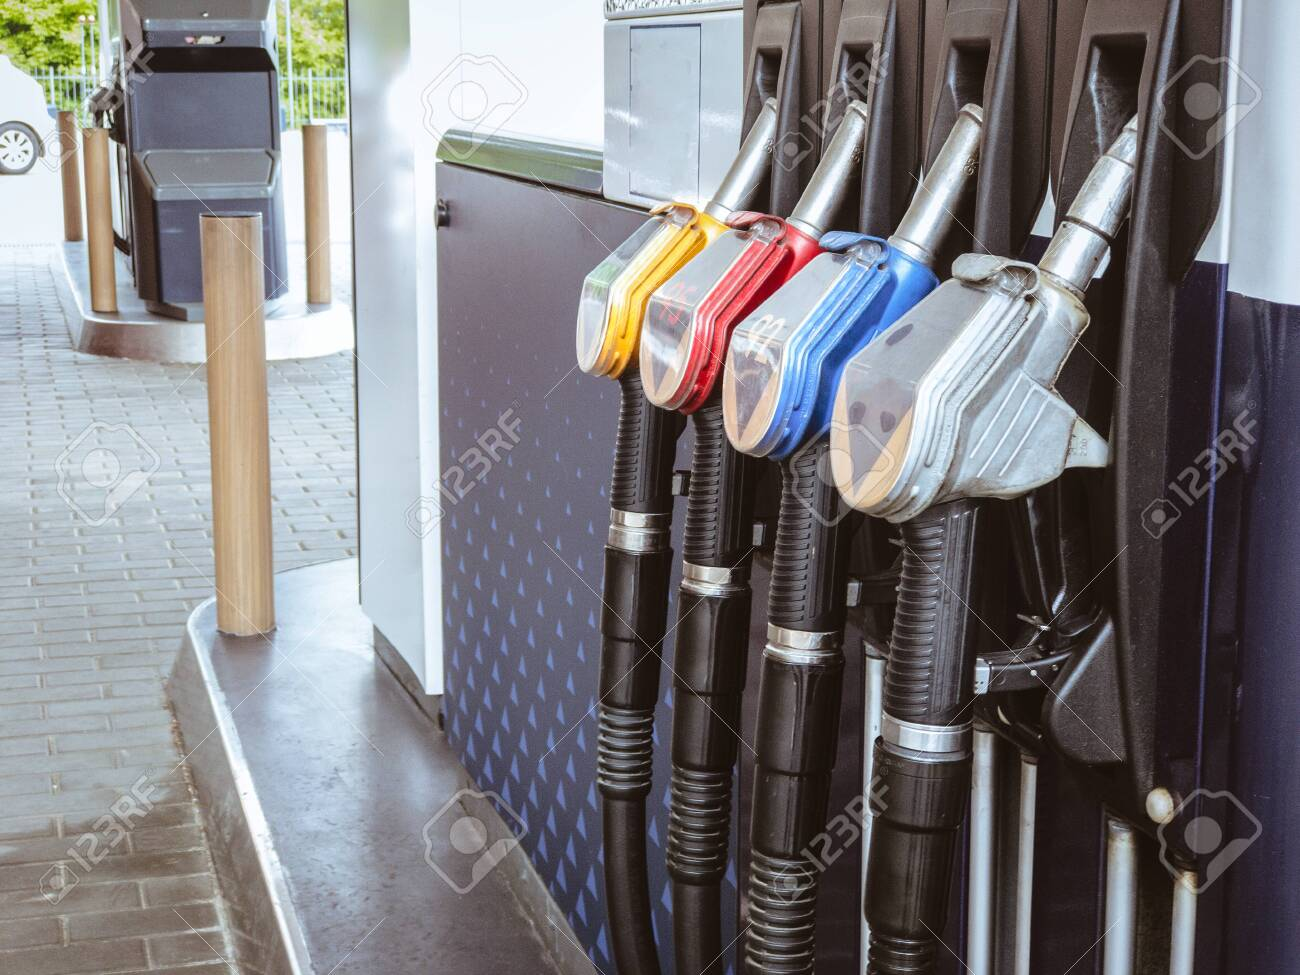 Gas Petrol station with fuel gasoline dispensers background - 149725126